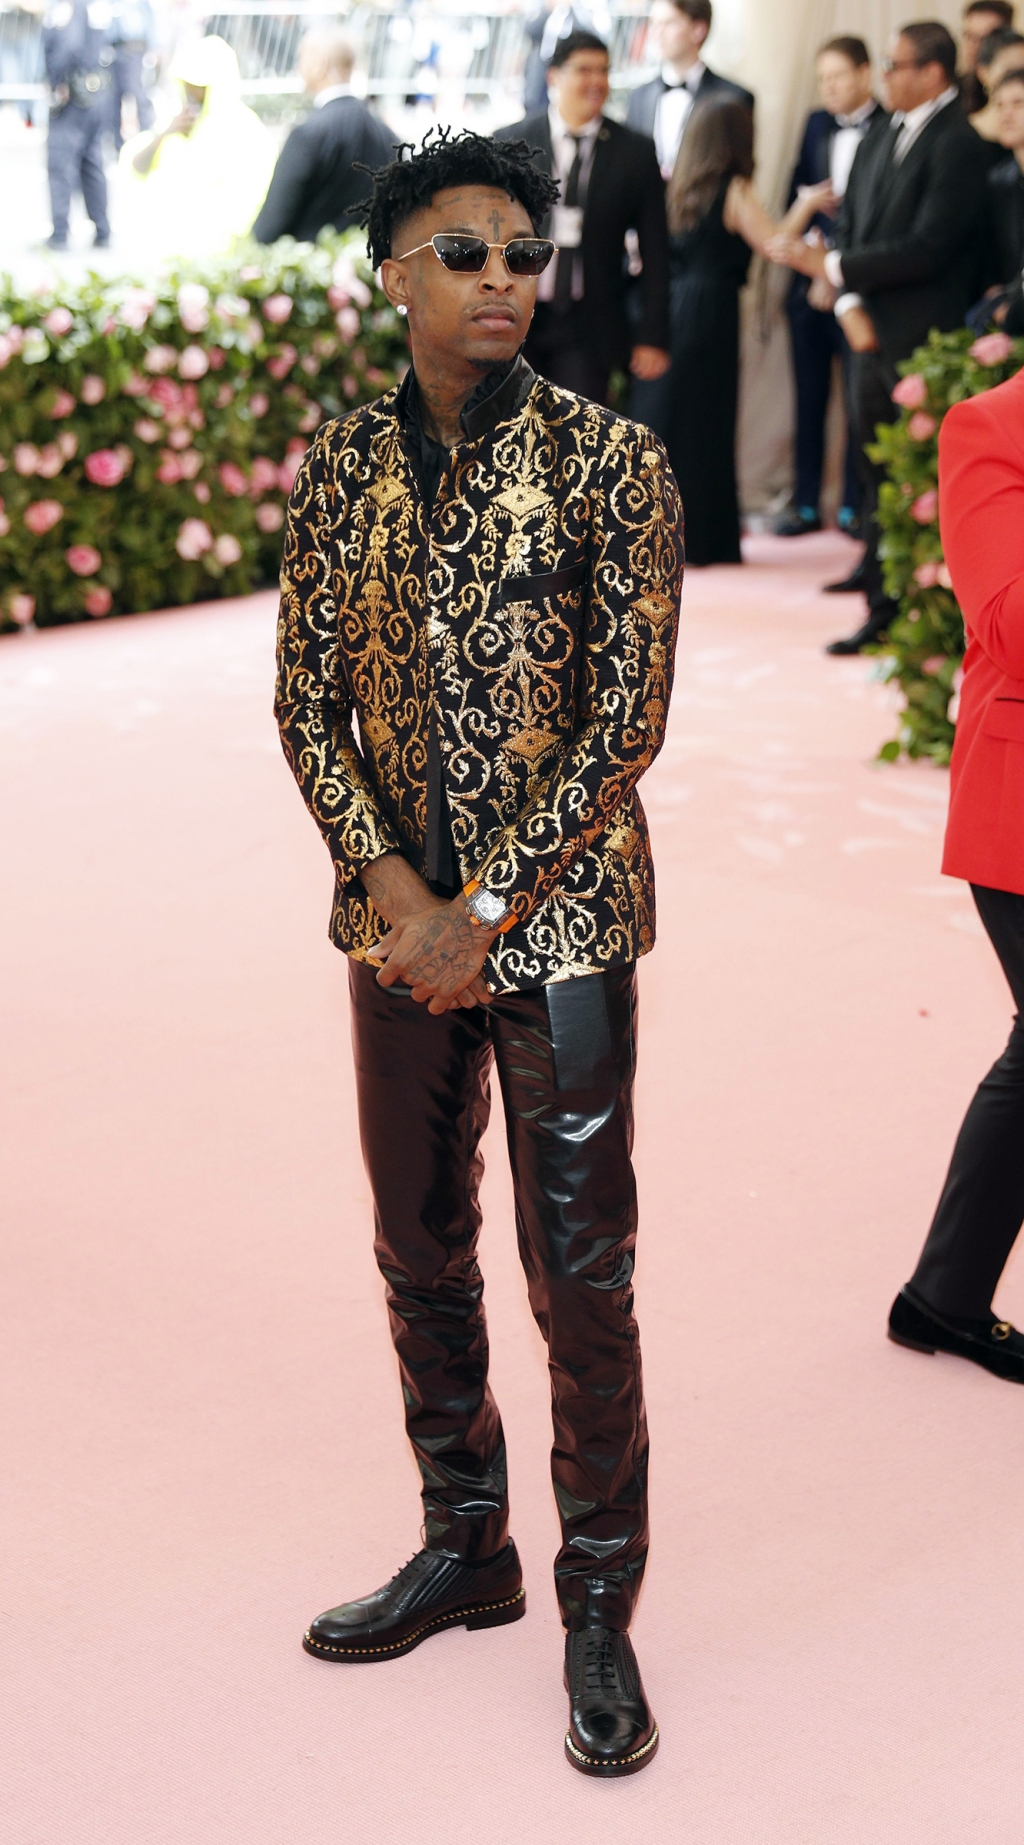 21 Savage attends The 2019 Met Gala Celebrating Camp: Notes on Fashion at Metropolitan Museum of Art on May 06, 2019 in New York City.